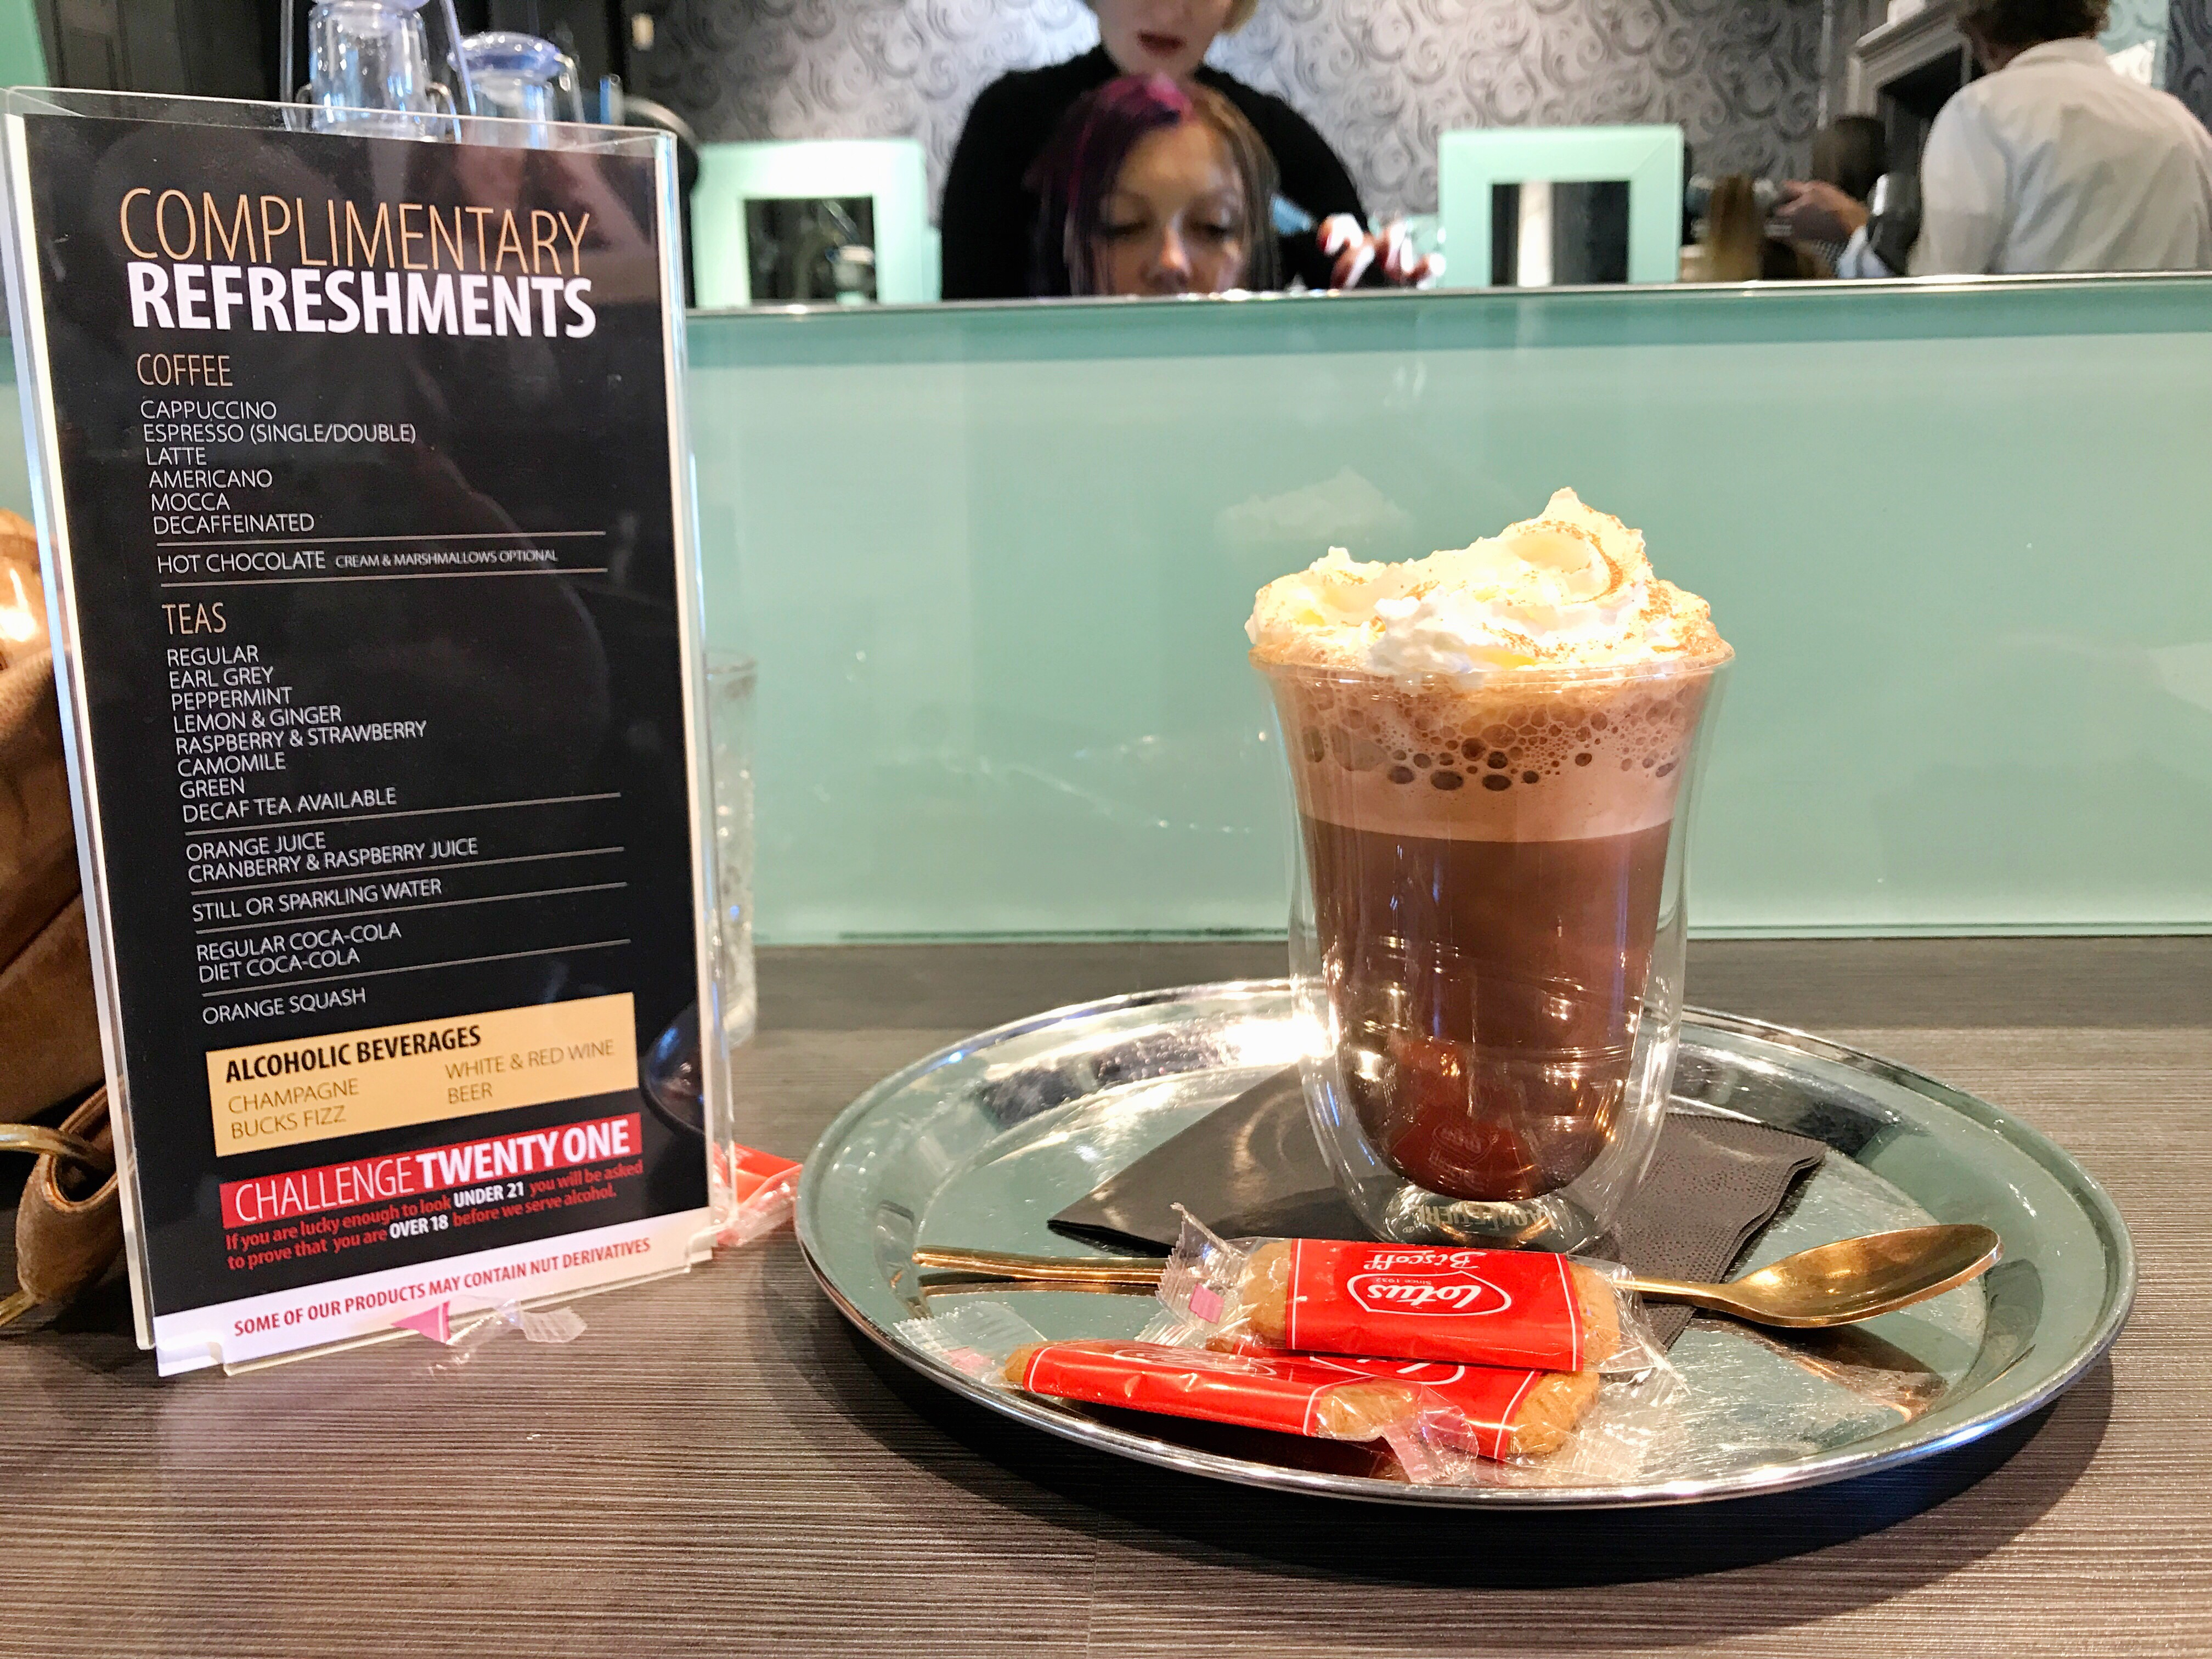 The hot chocolate with cream that I had next to a menu of the complimentary drinks that Stuart Holmes offers which includes a variety of coffees and soft drinks with alcoholic options available for £2.00 a glass.